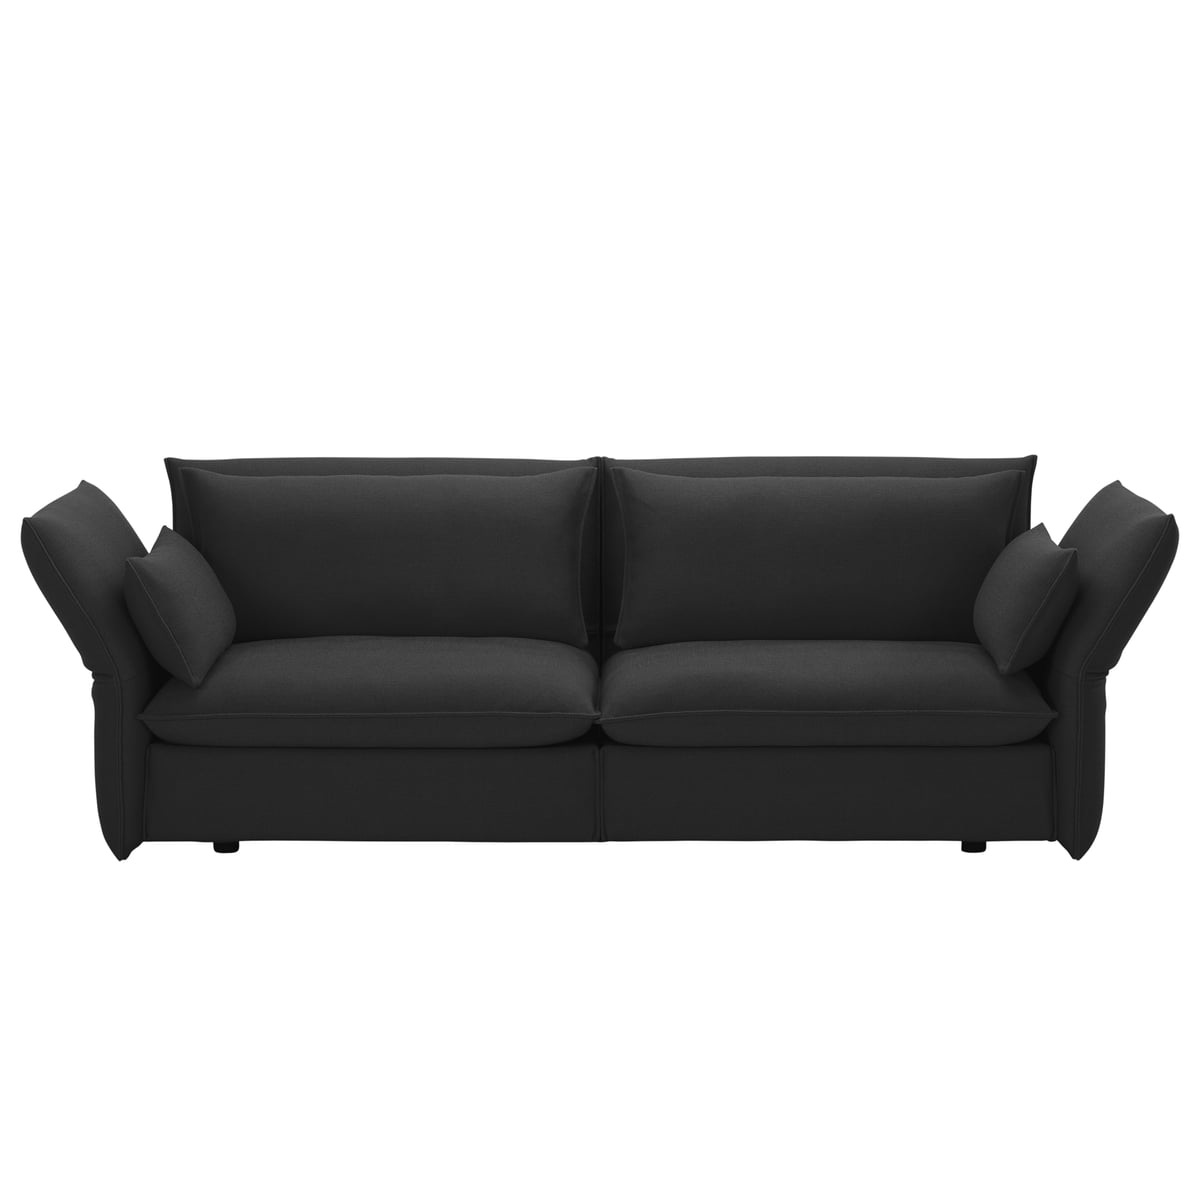 vitra mariposa 3 sitzer sofa imwohndesign shop. Black Bedroom Furniture Sets. Home Design Ideas